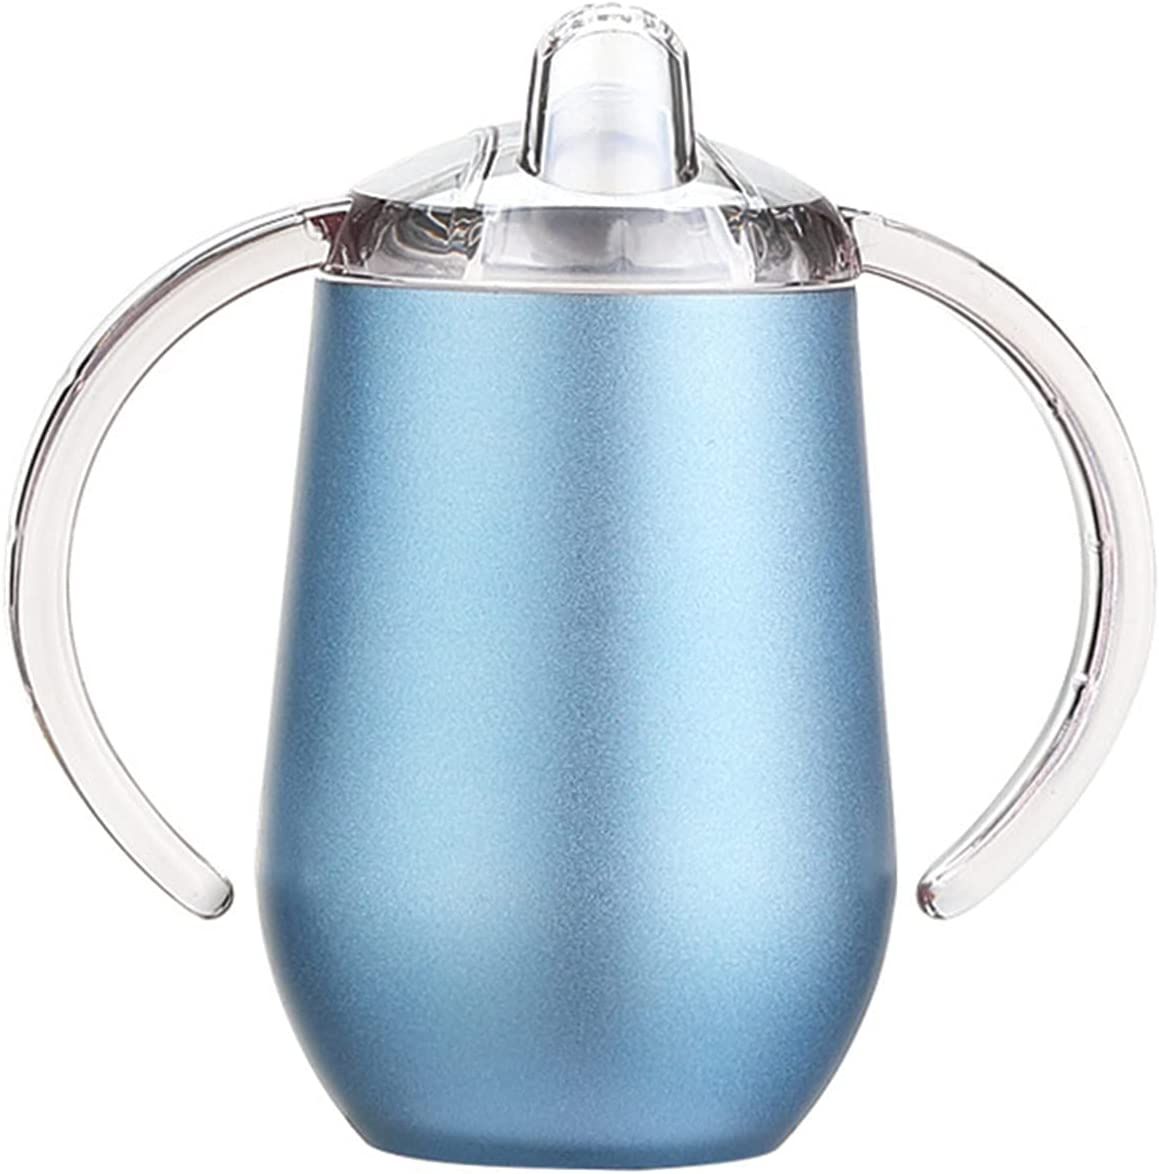 Stainless Steel Sippy Cup Double Attention brand Insulated Wall Tu Vacuum Topics on TV